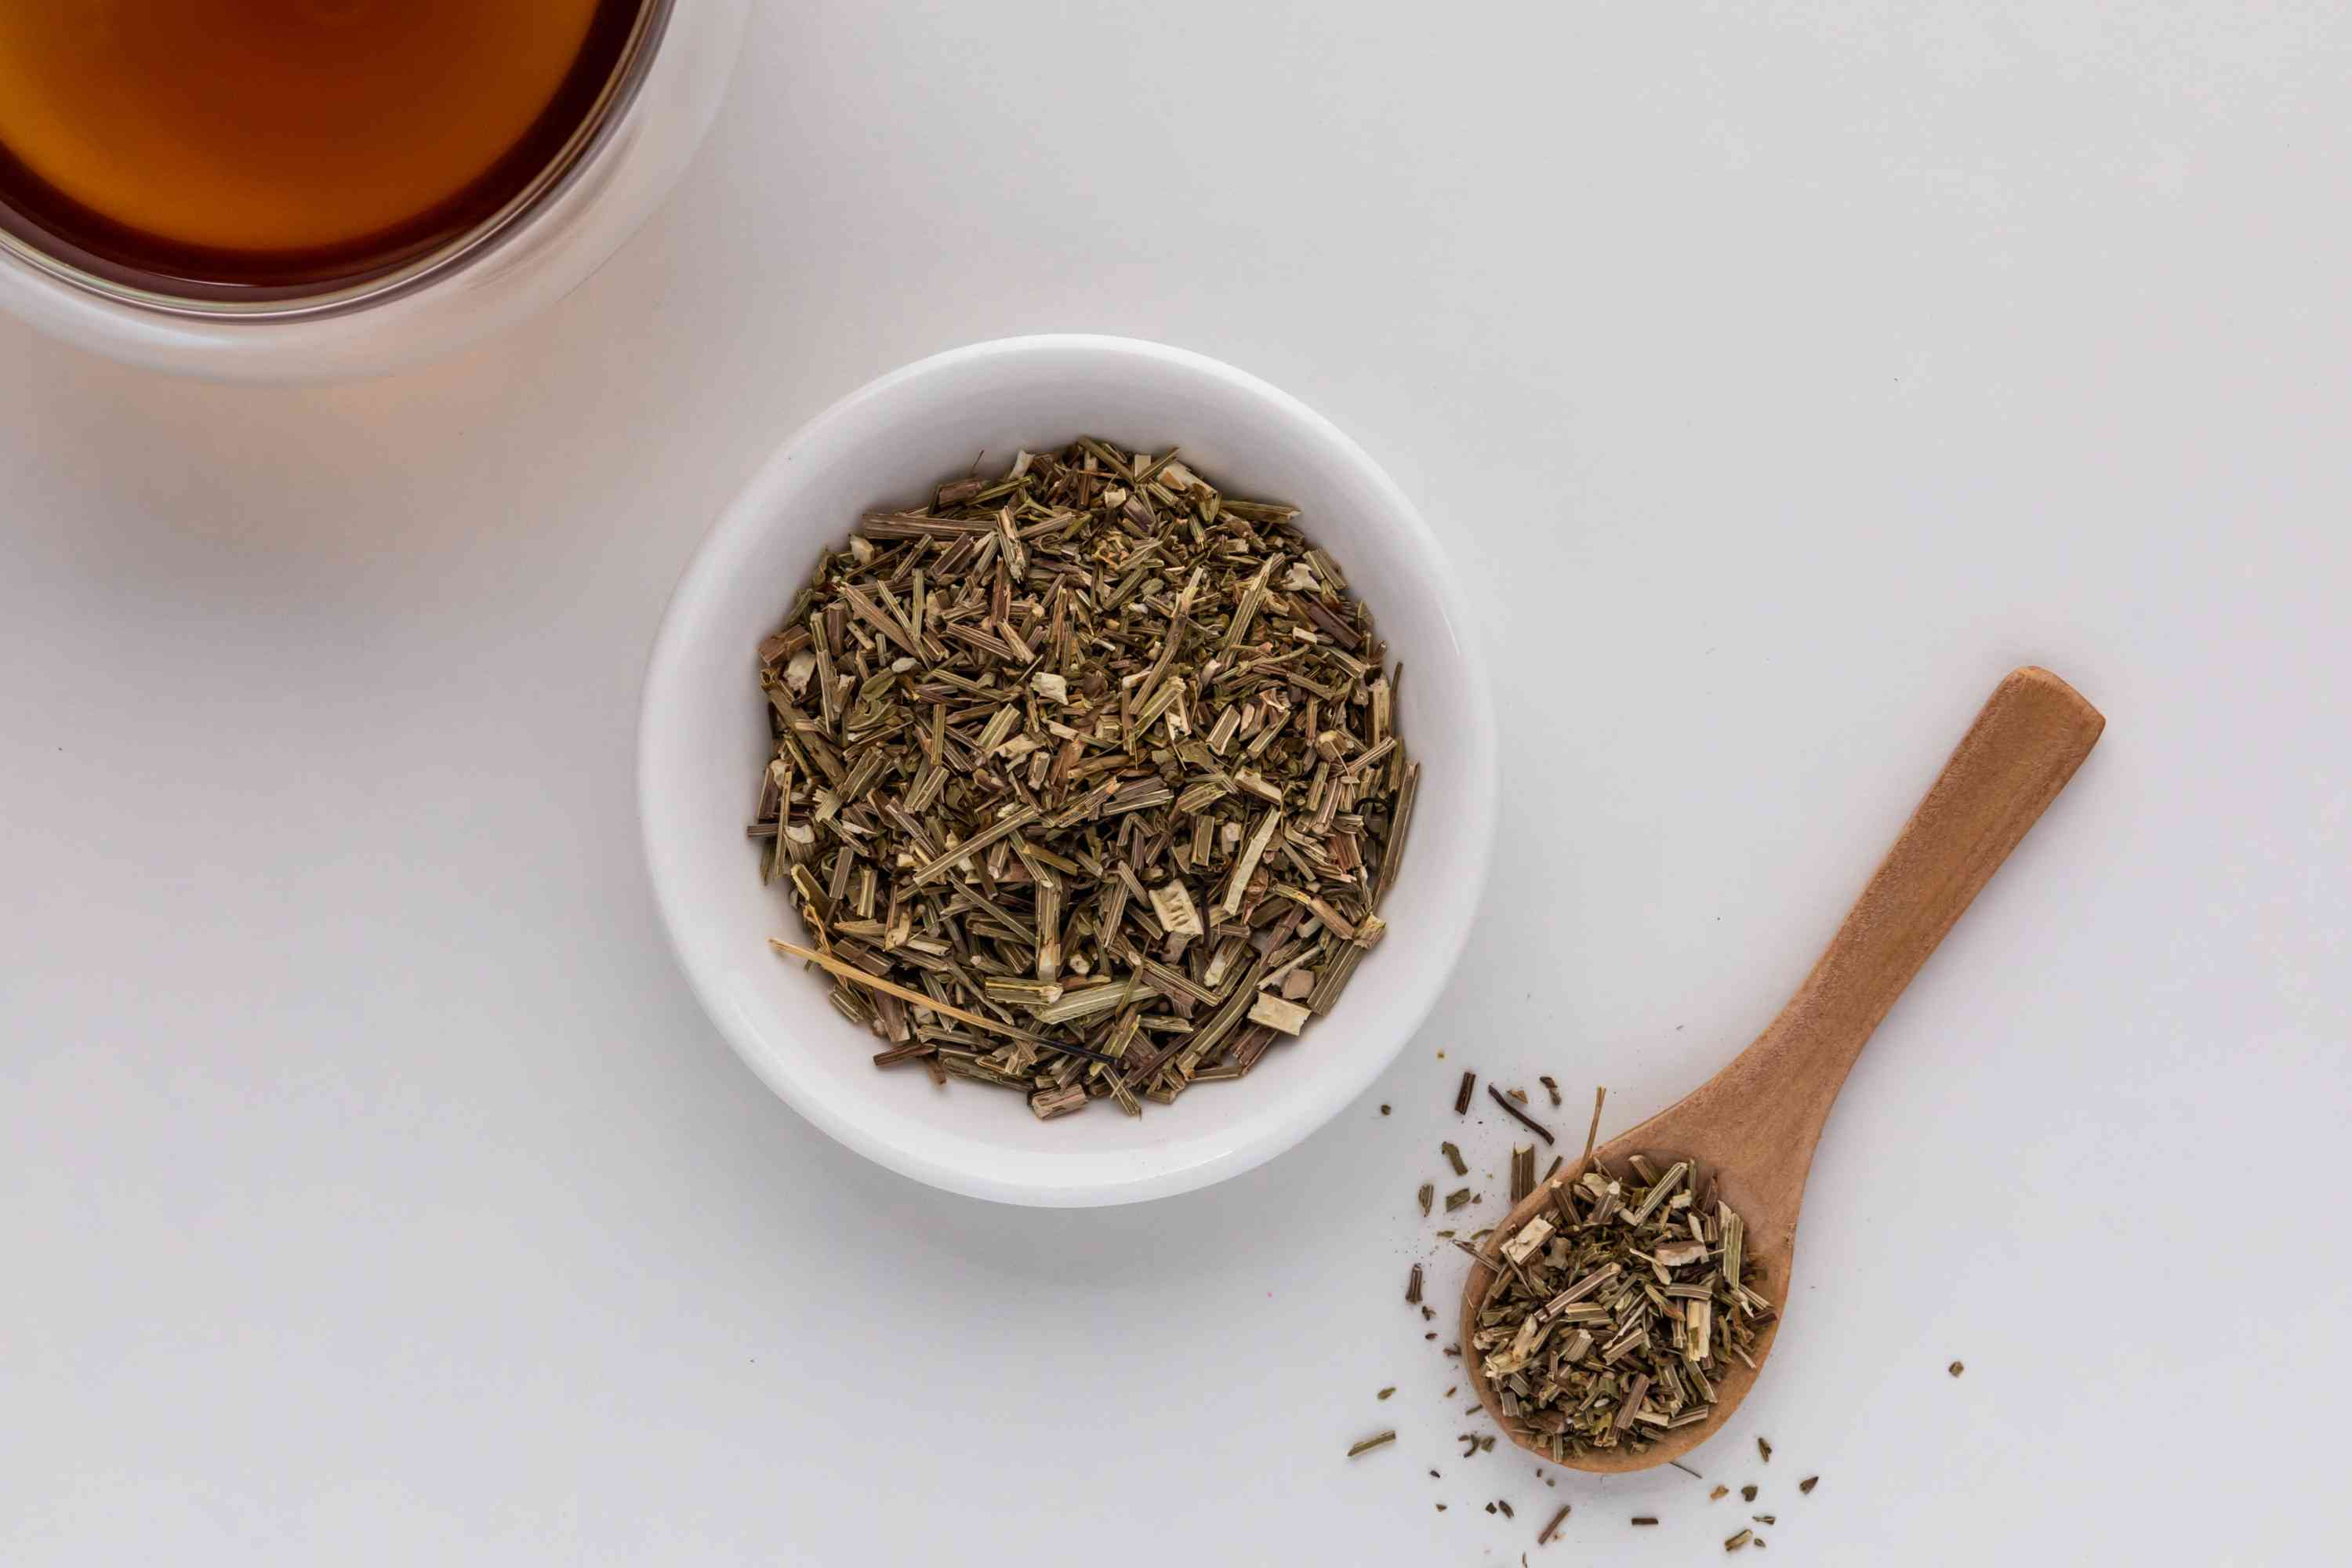 Vervain dried herb